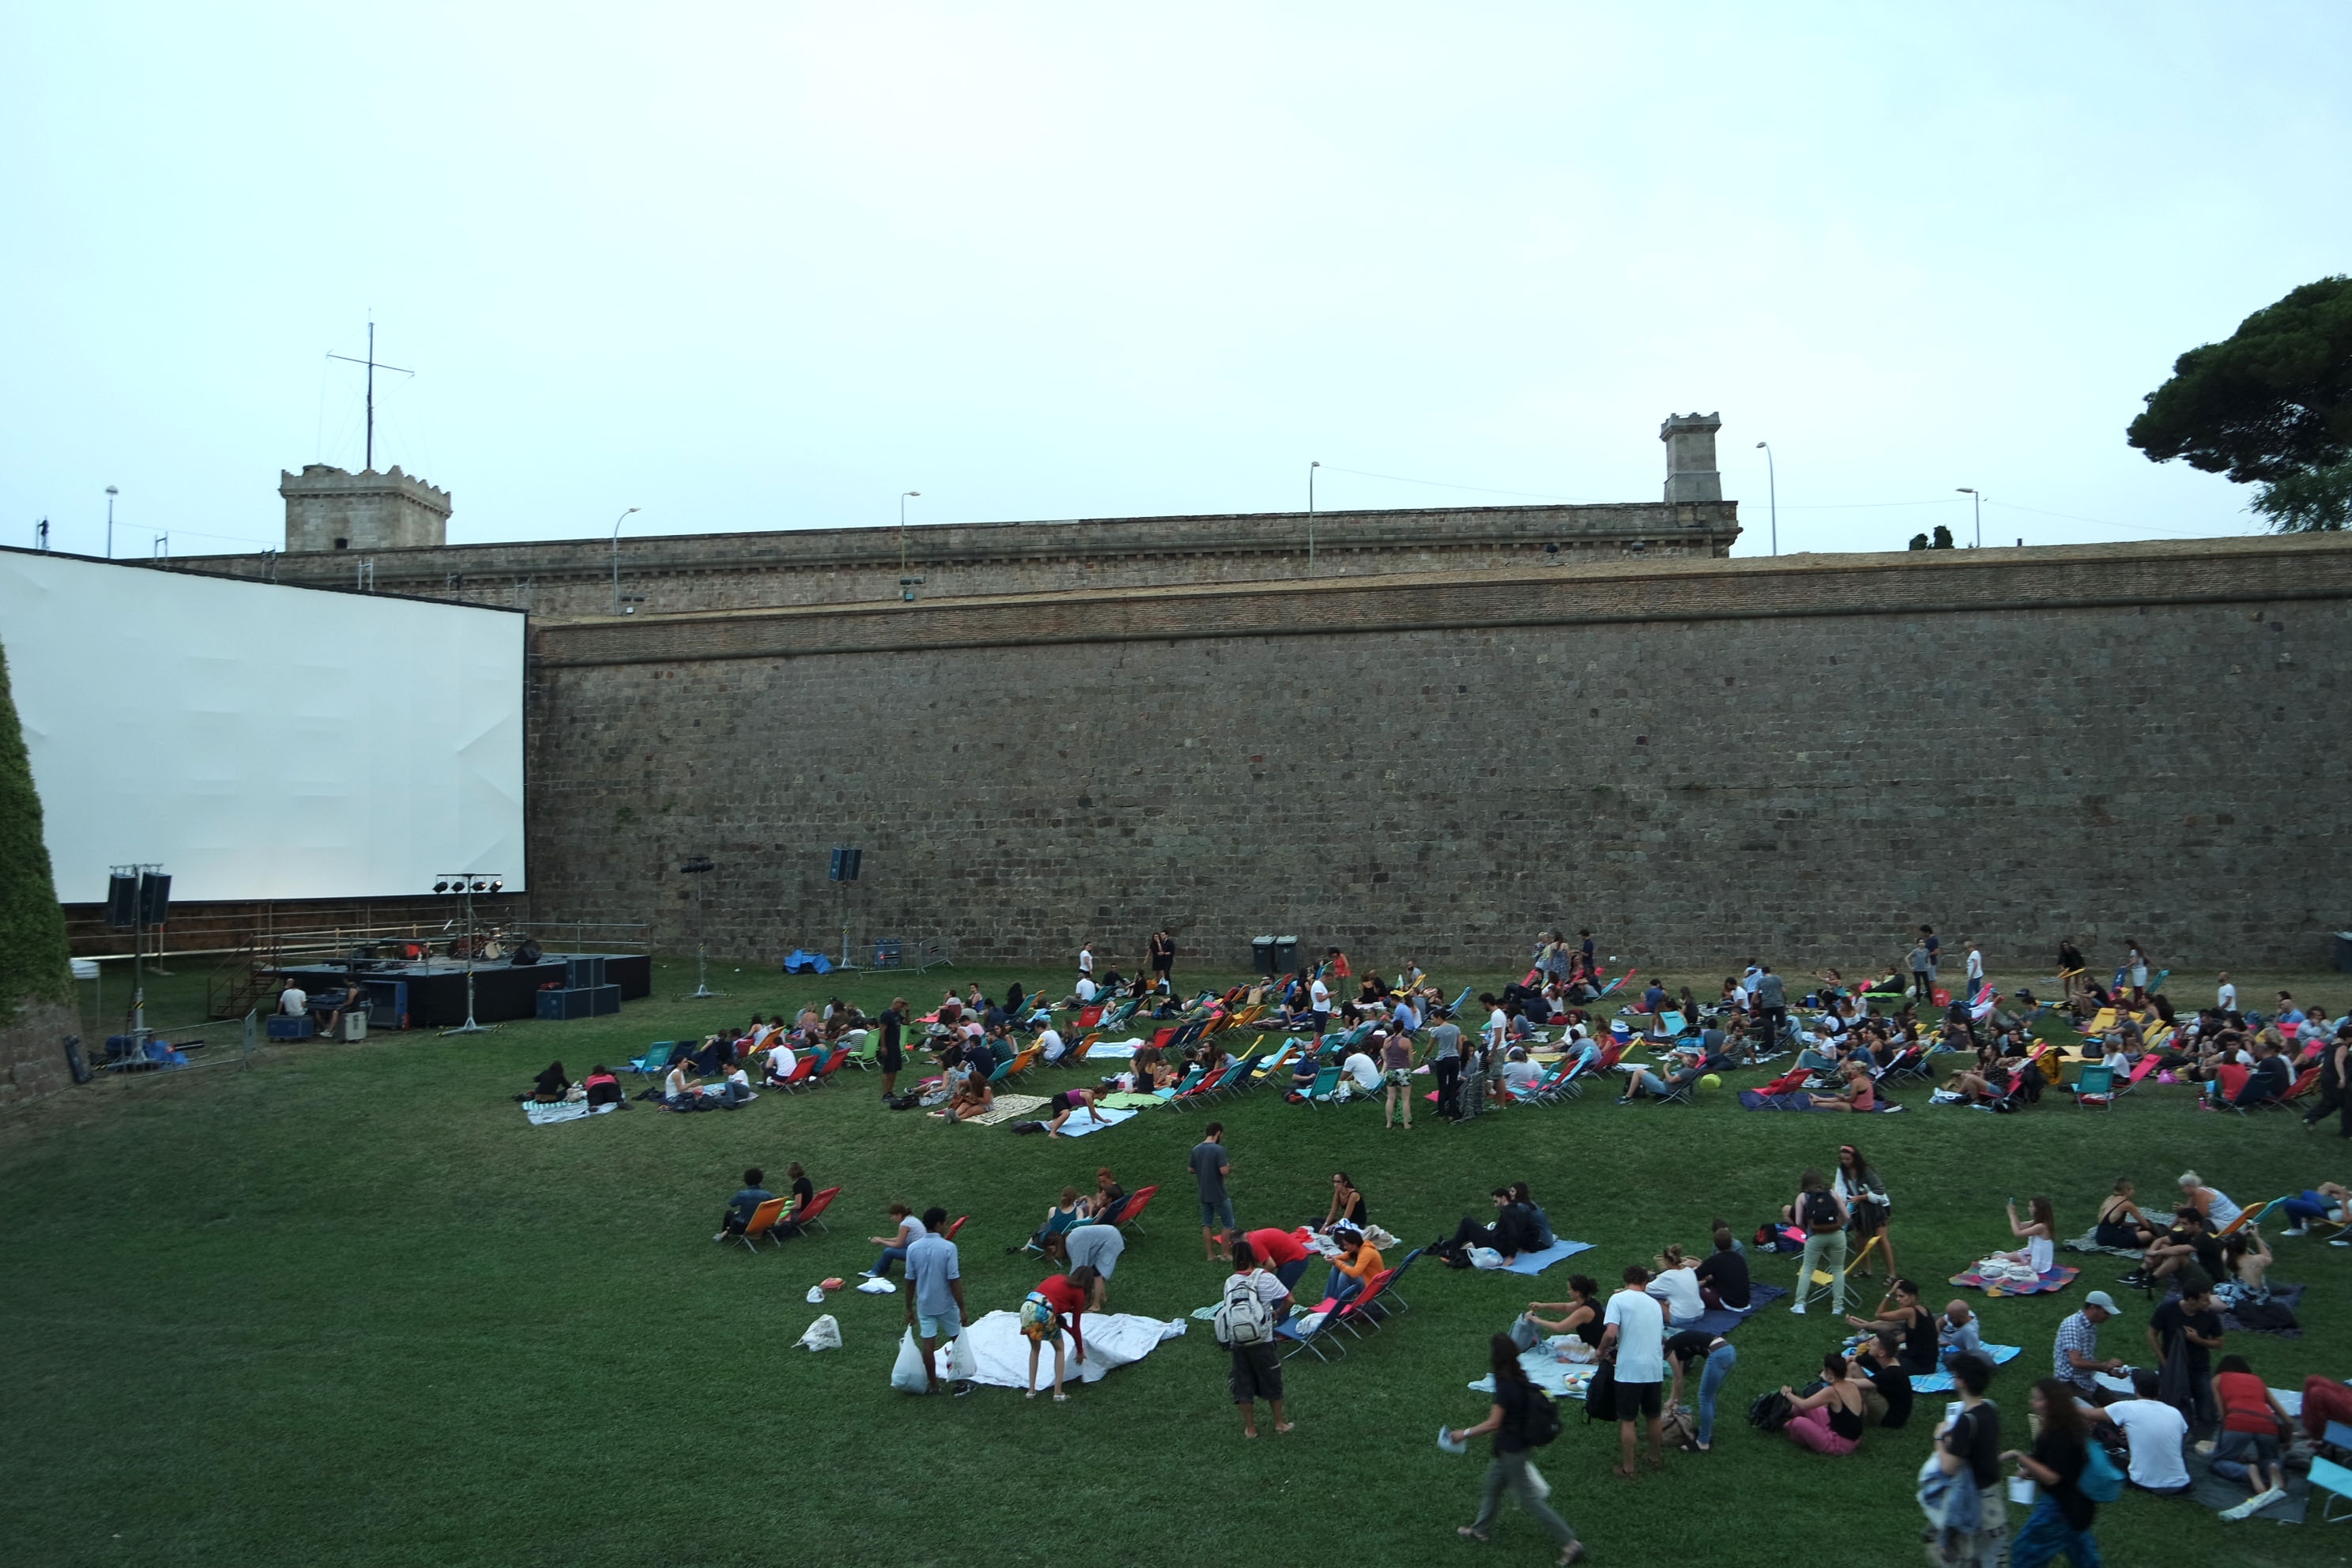 Montjuic linguaschools barcelona blog for Cinema montjuic 2016